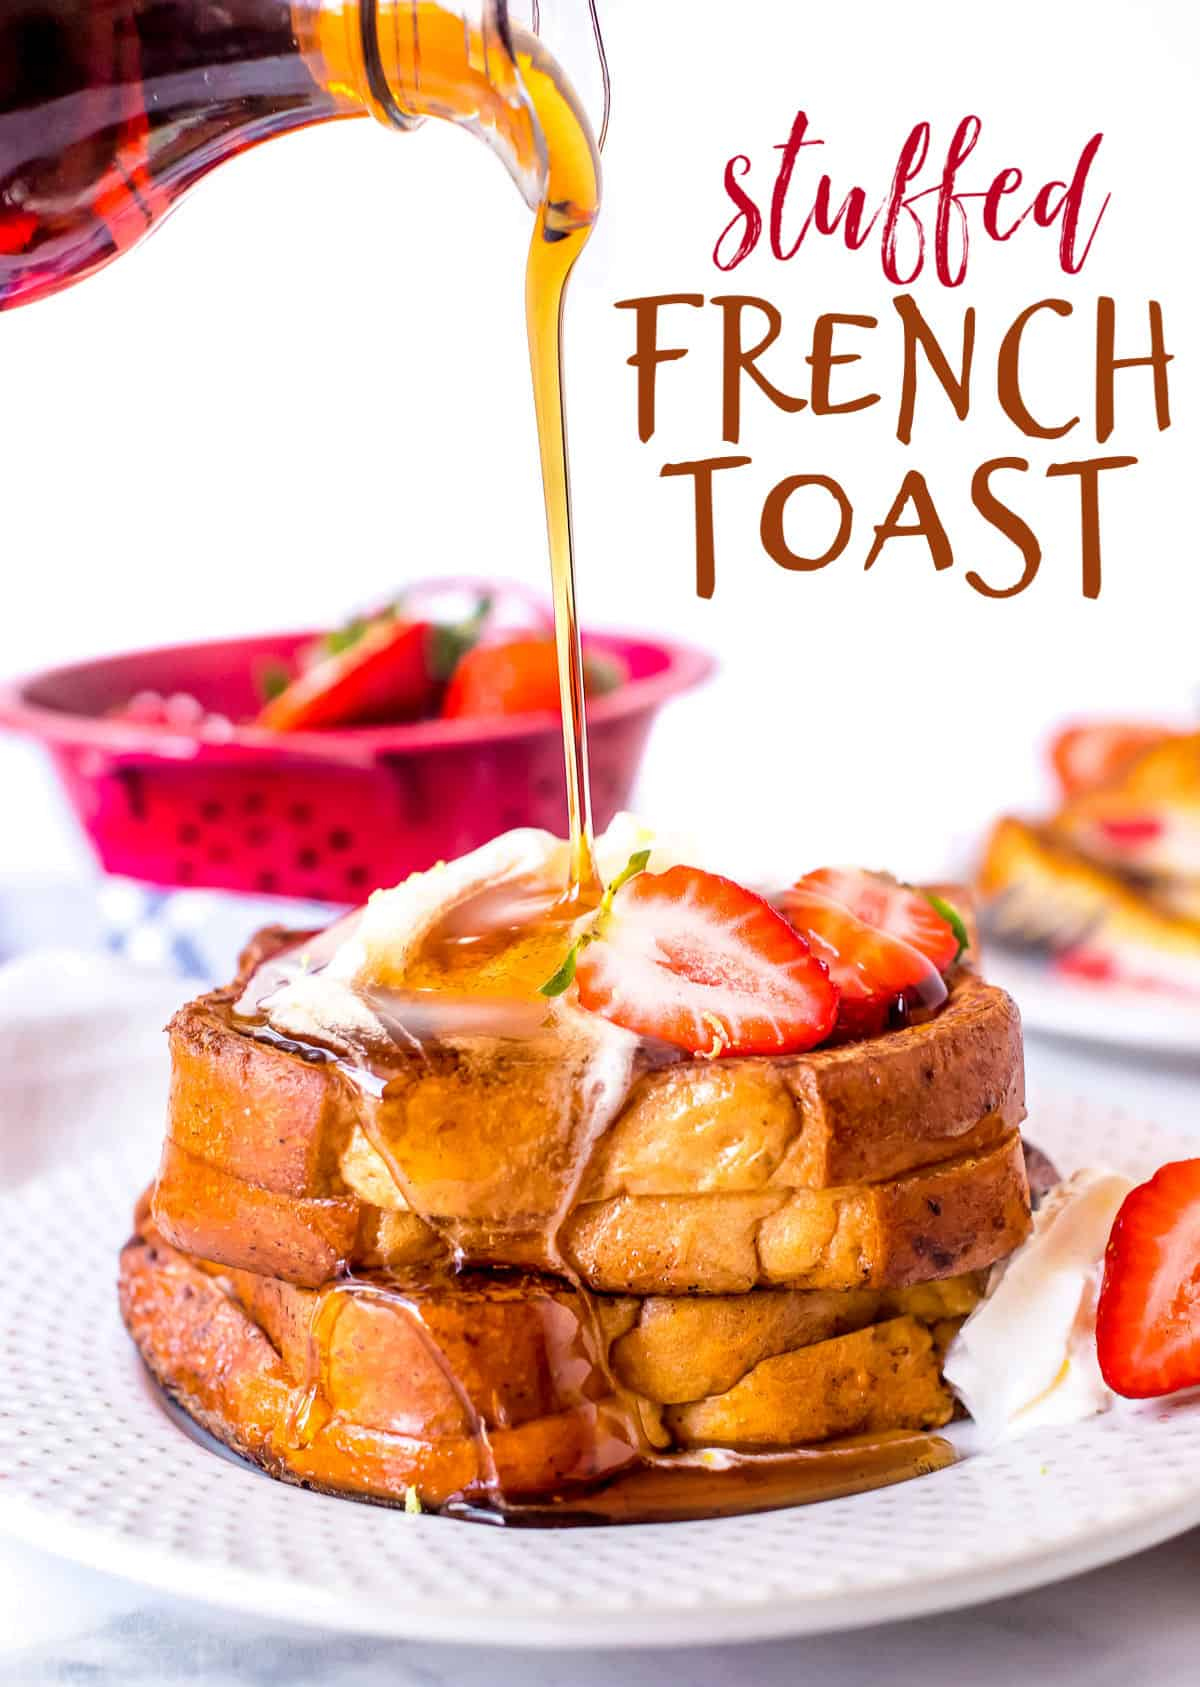 stuffed french toast recipe with cream cheese and strawberries on plate with syrup title